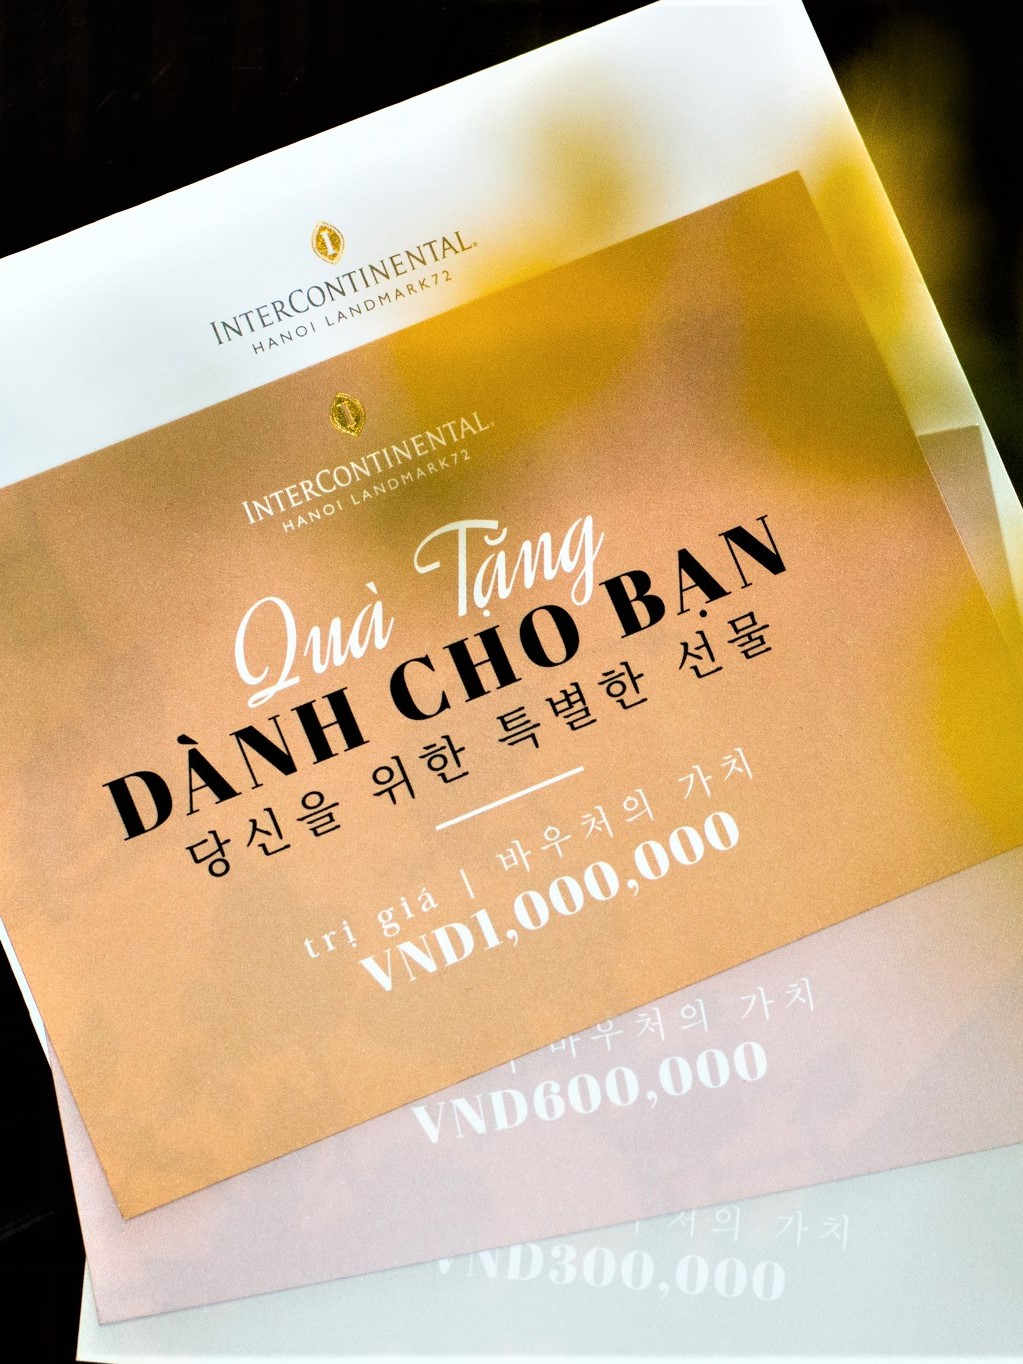 intercontinental hanoi dining gift card